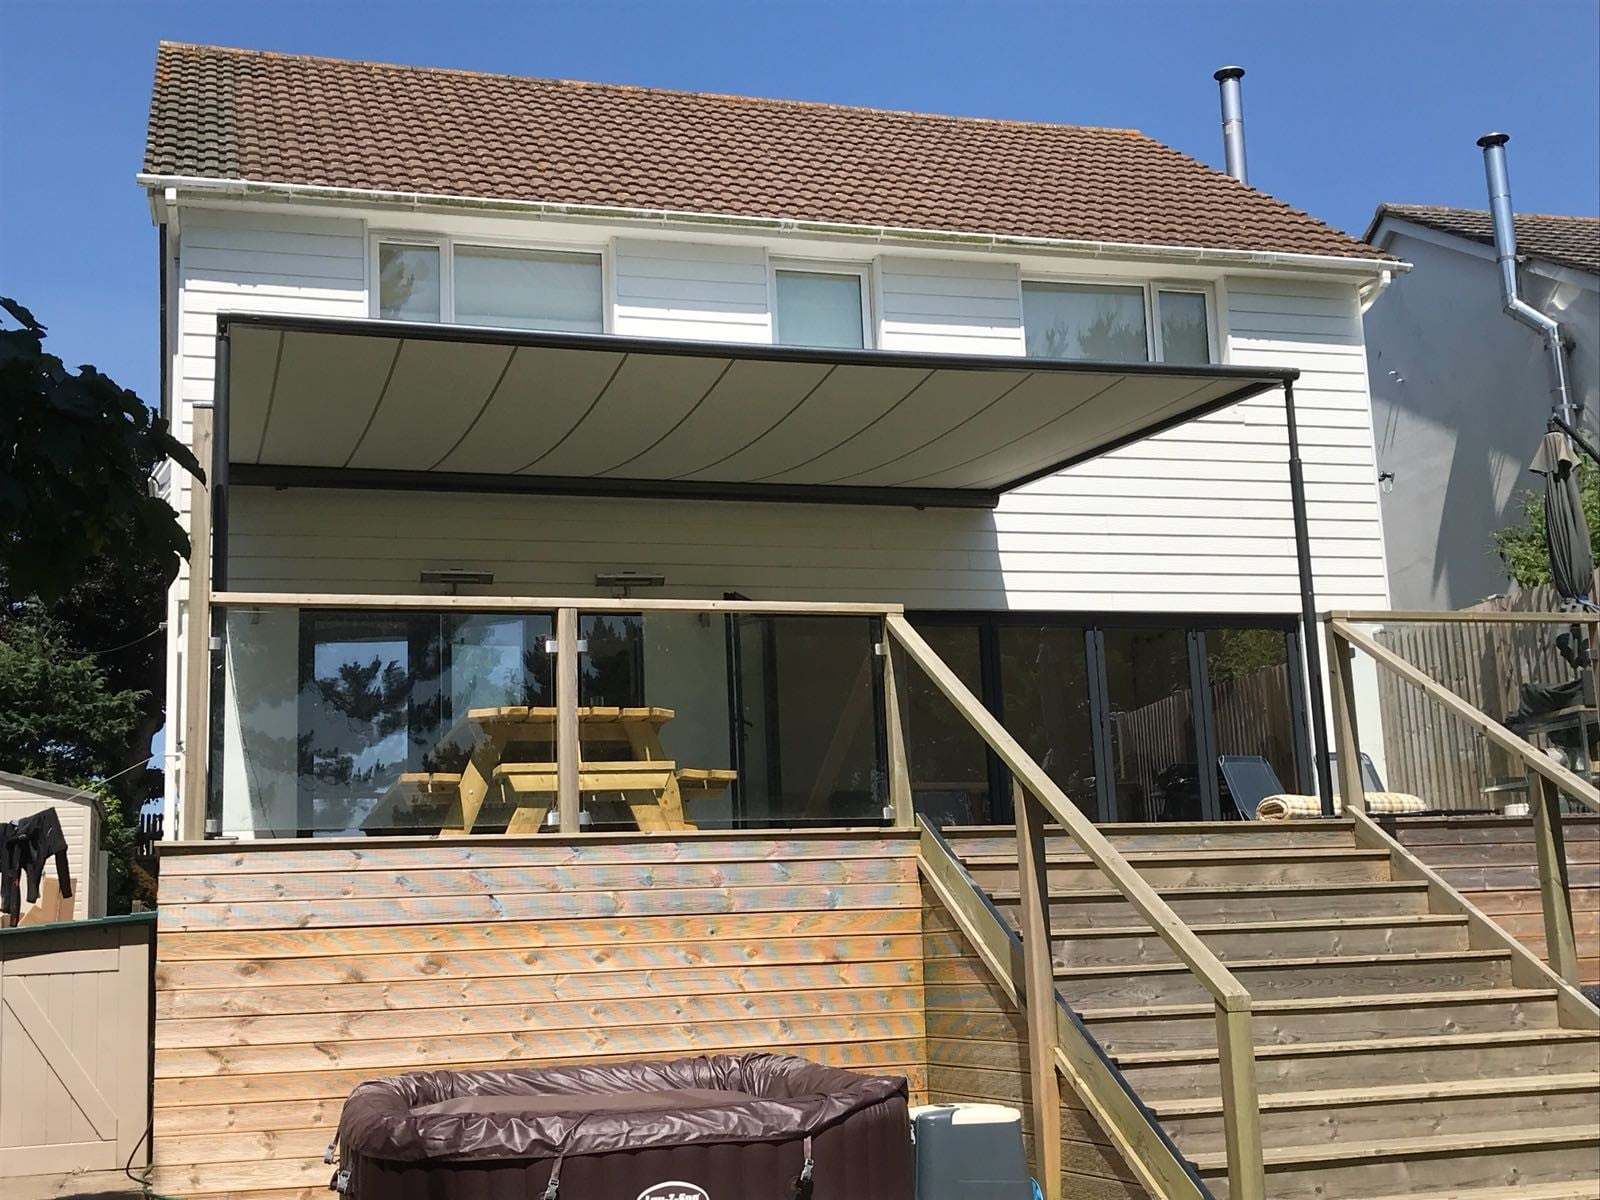 Markilux Pergola System Project Radiant Blinds Ltd